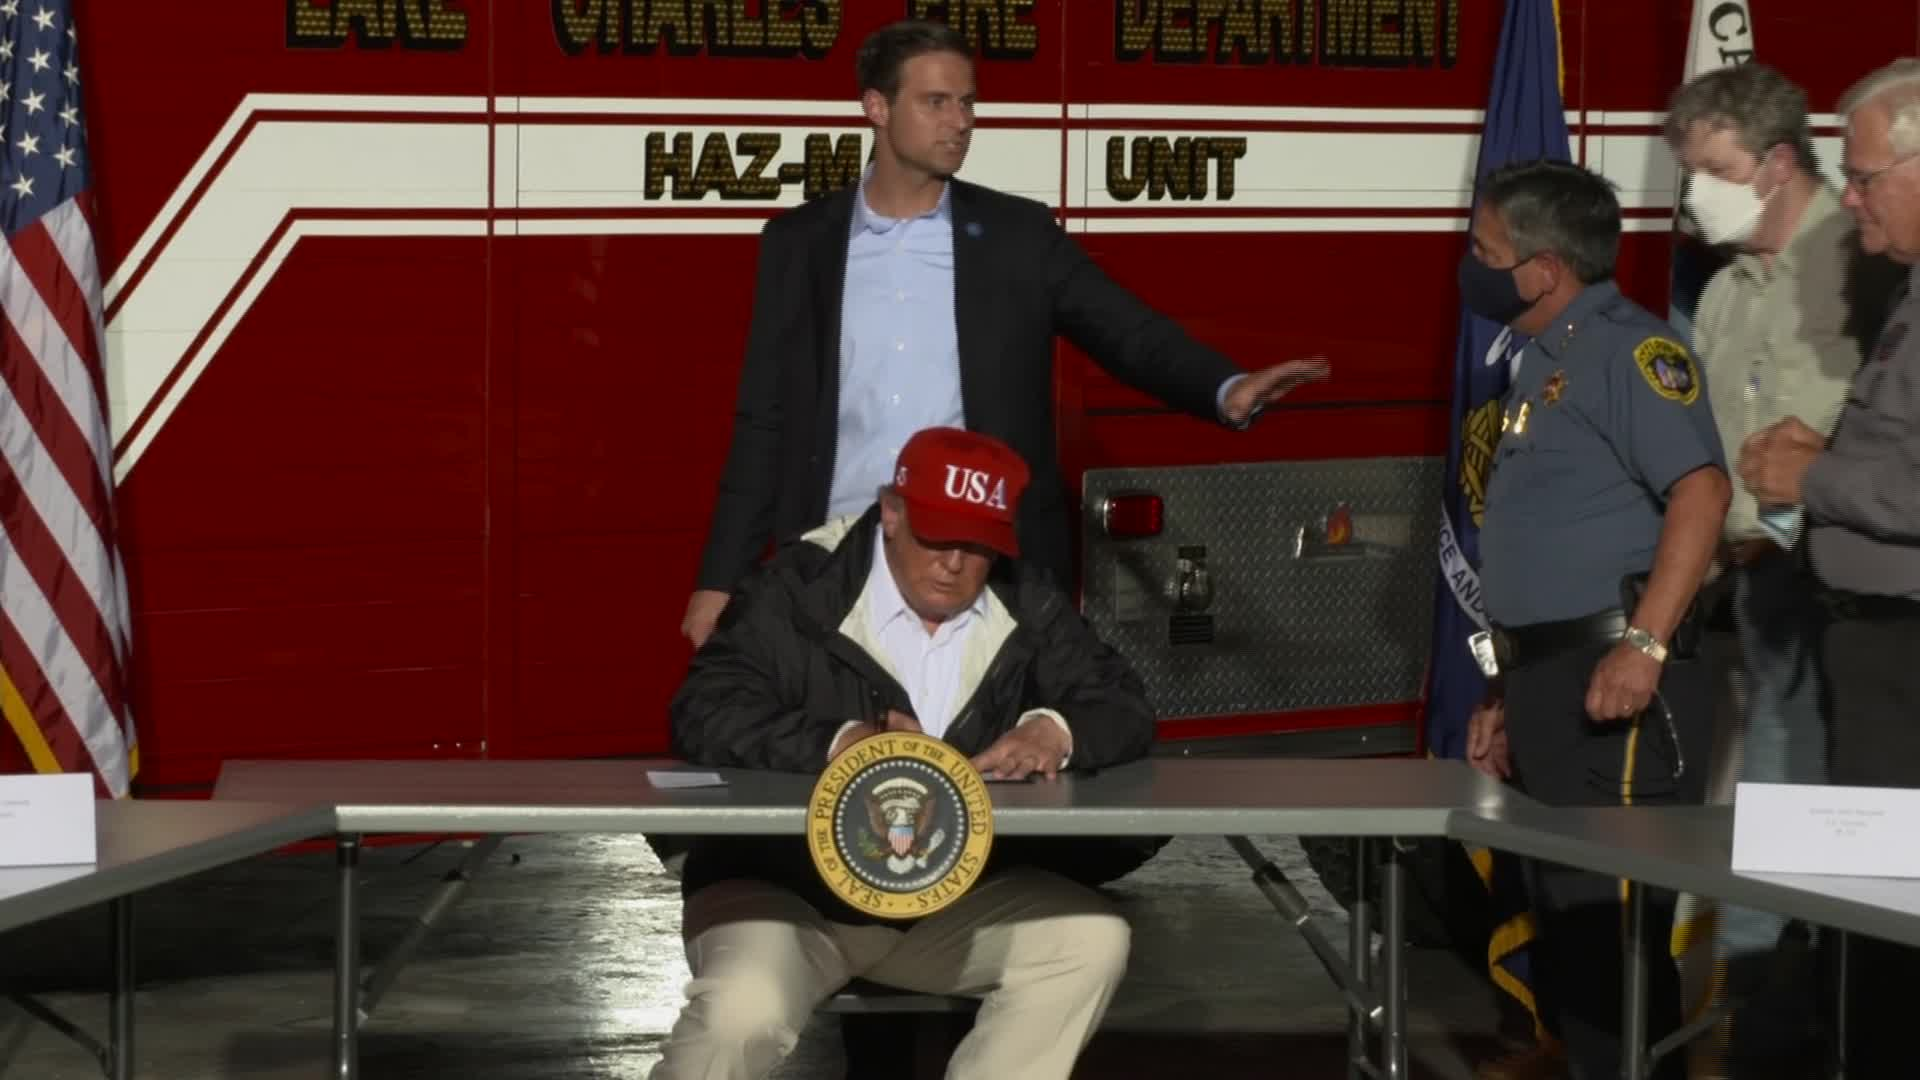 President Donald Trump's staff attempt to keep roundtable participants at a distance as a precaution at the end of a briefing on Hurricane Laura in Lake Charles, Louisiana, on Saturday, August 29.